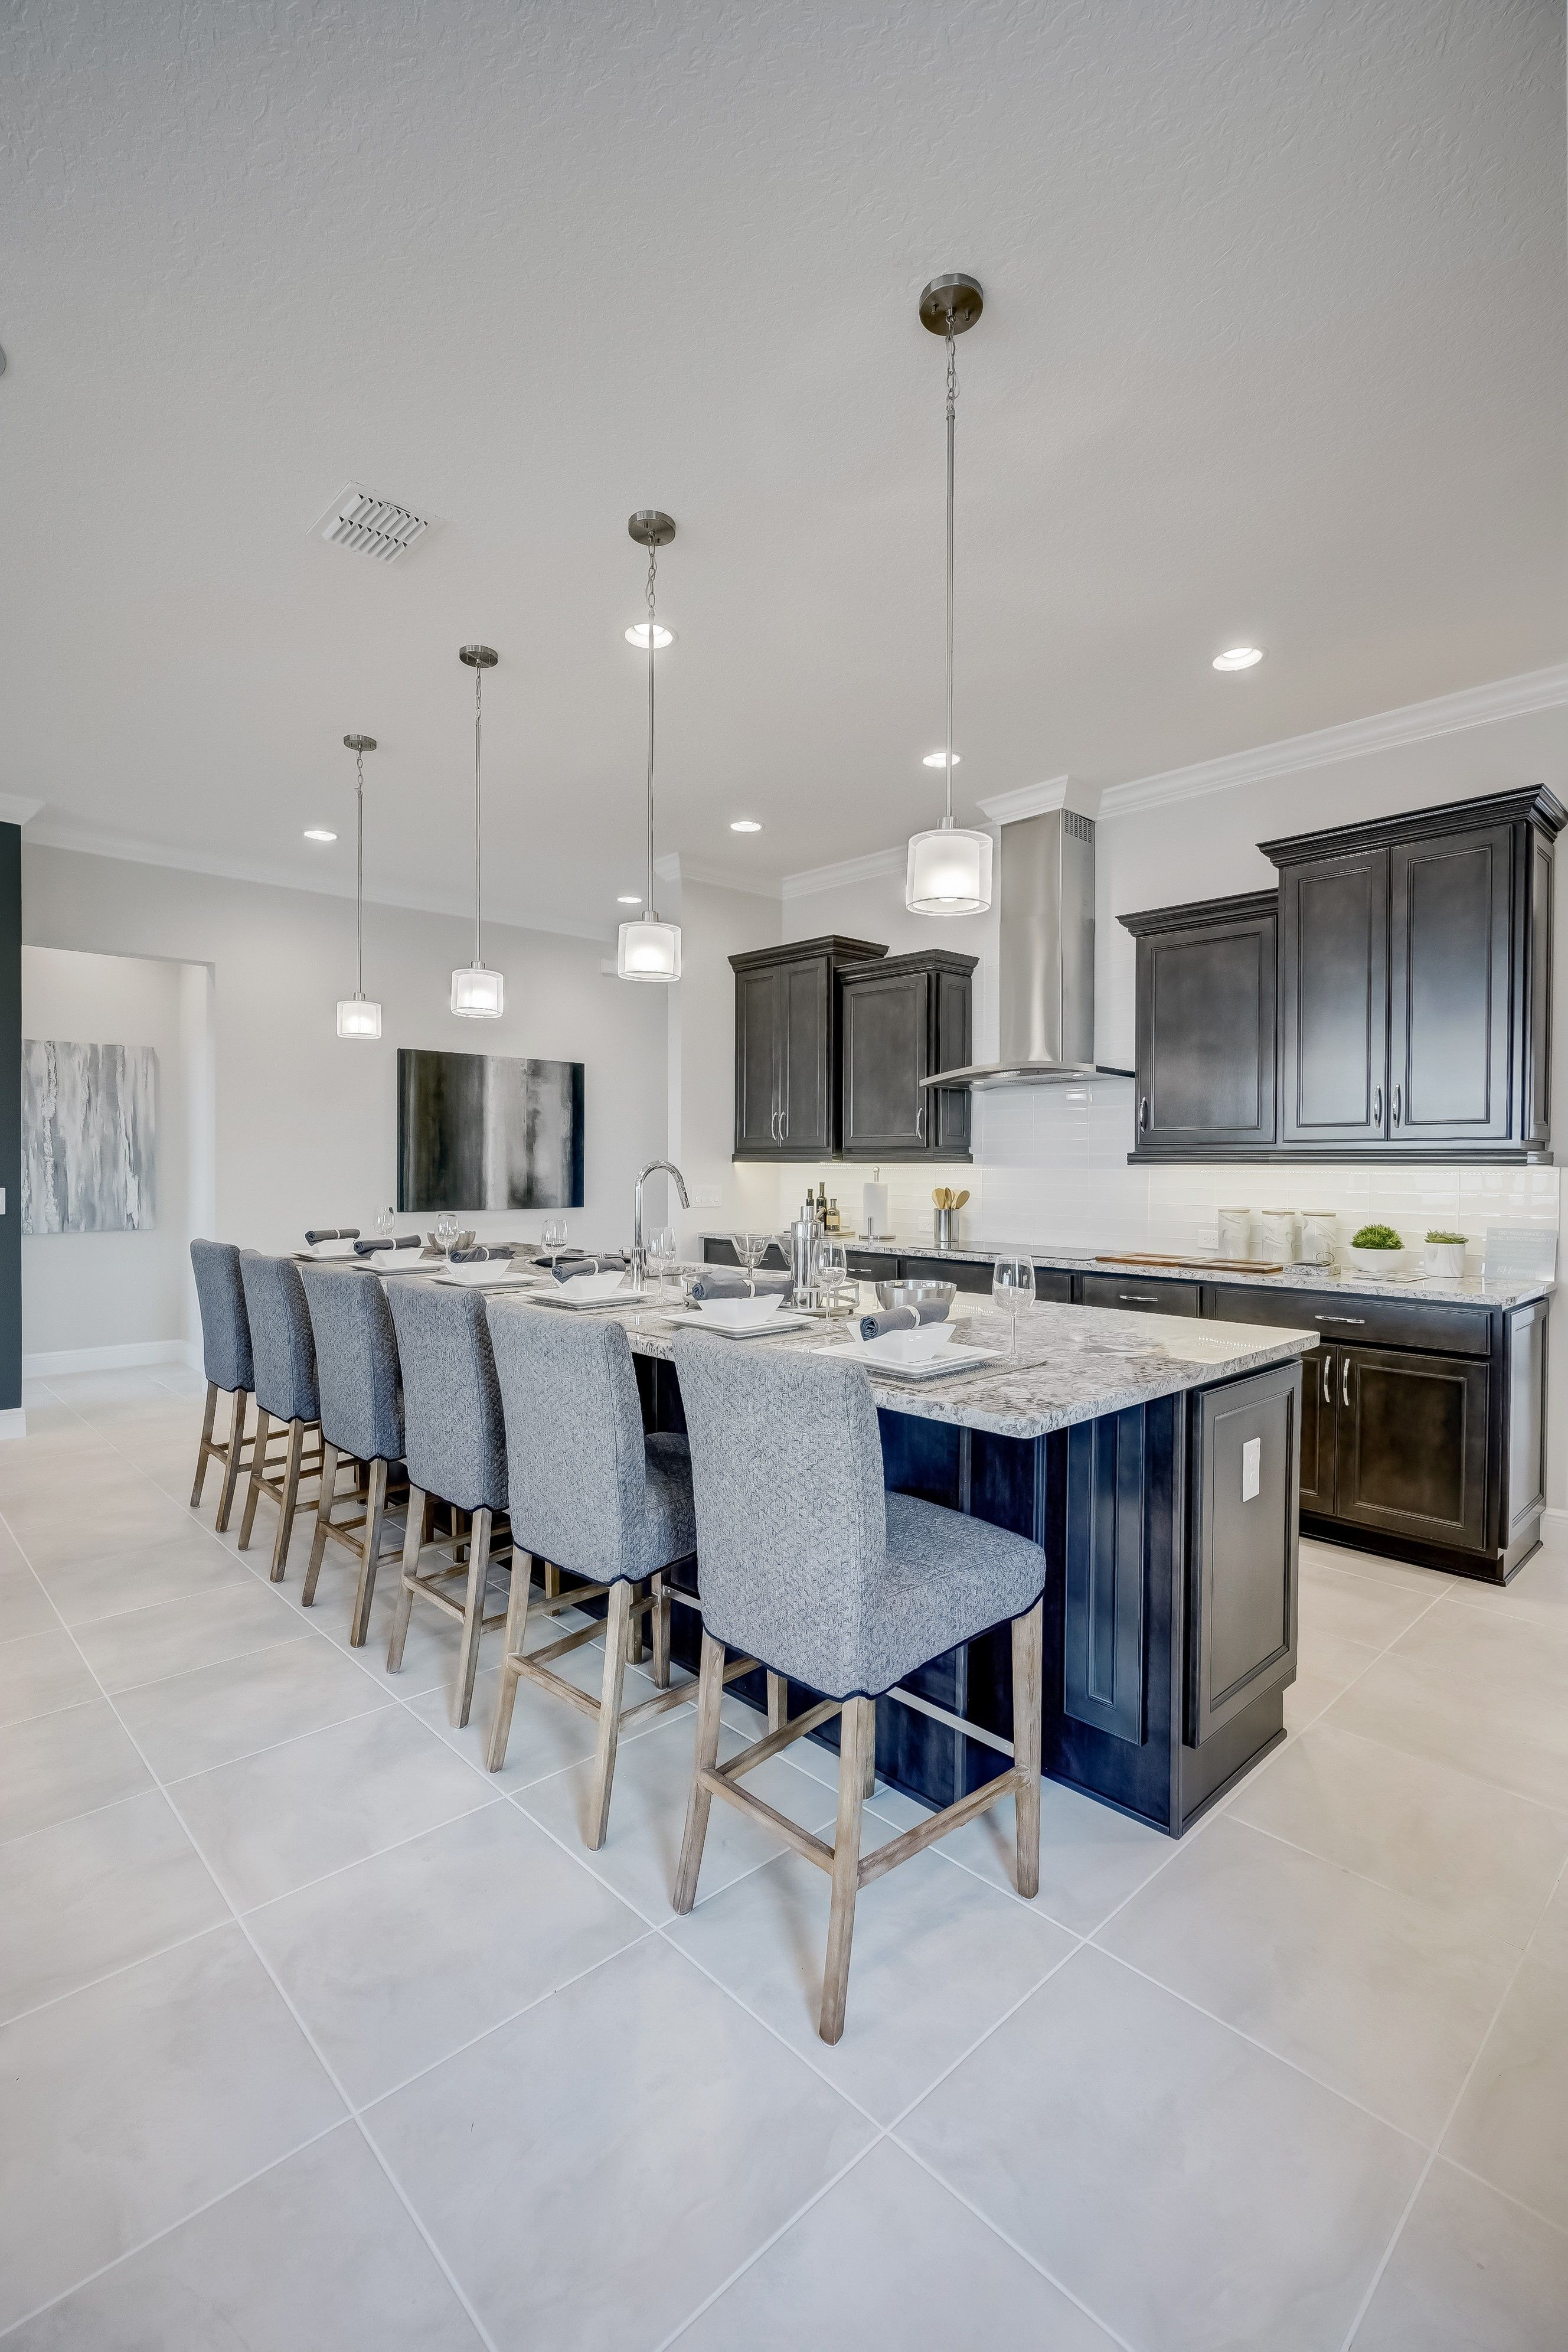 Kitchen featured in the Saint Lucia By K. Hovnanian® Homes in Orlando, FL